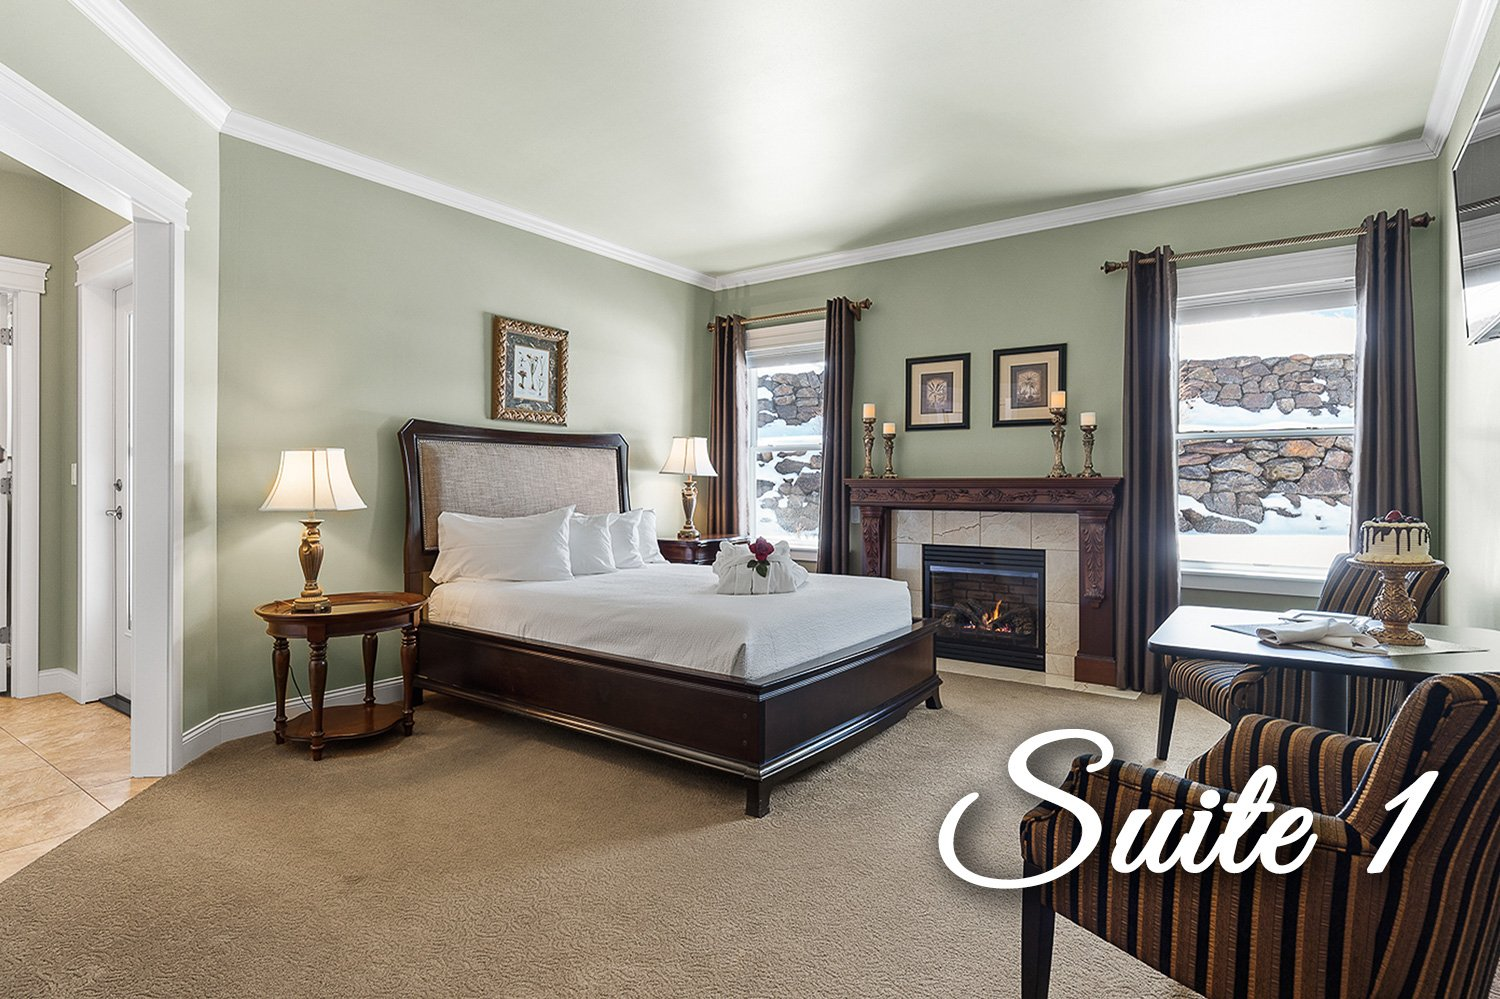 Suite 1 Bed with fireplace and end tables